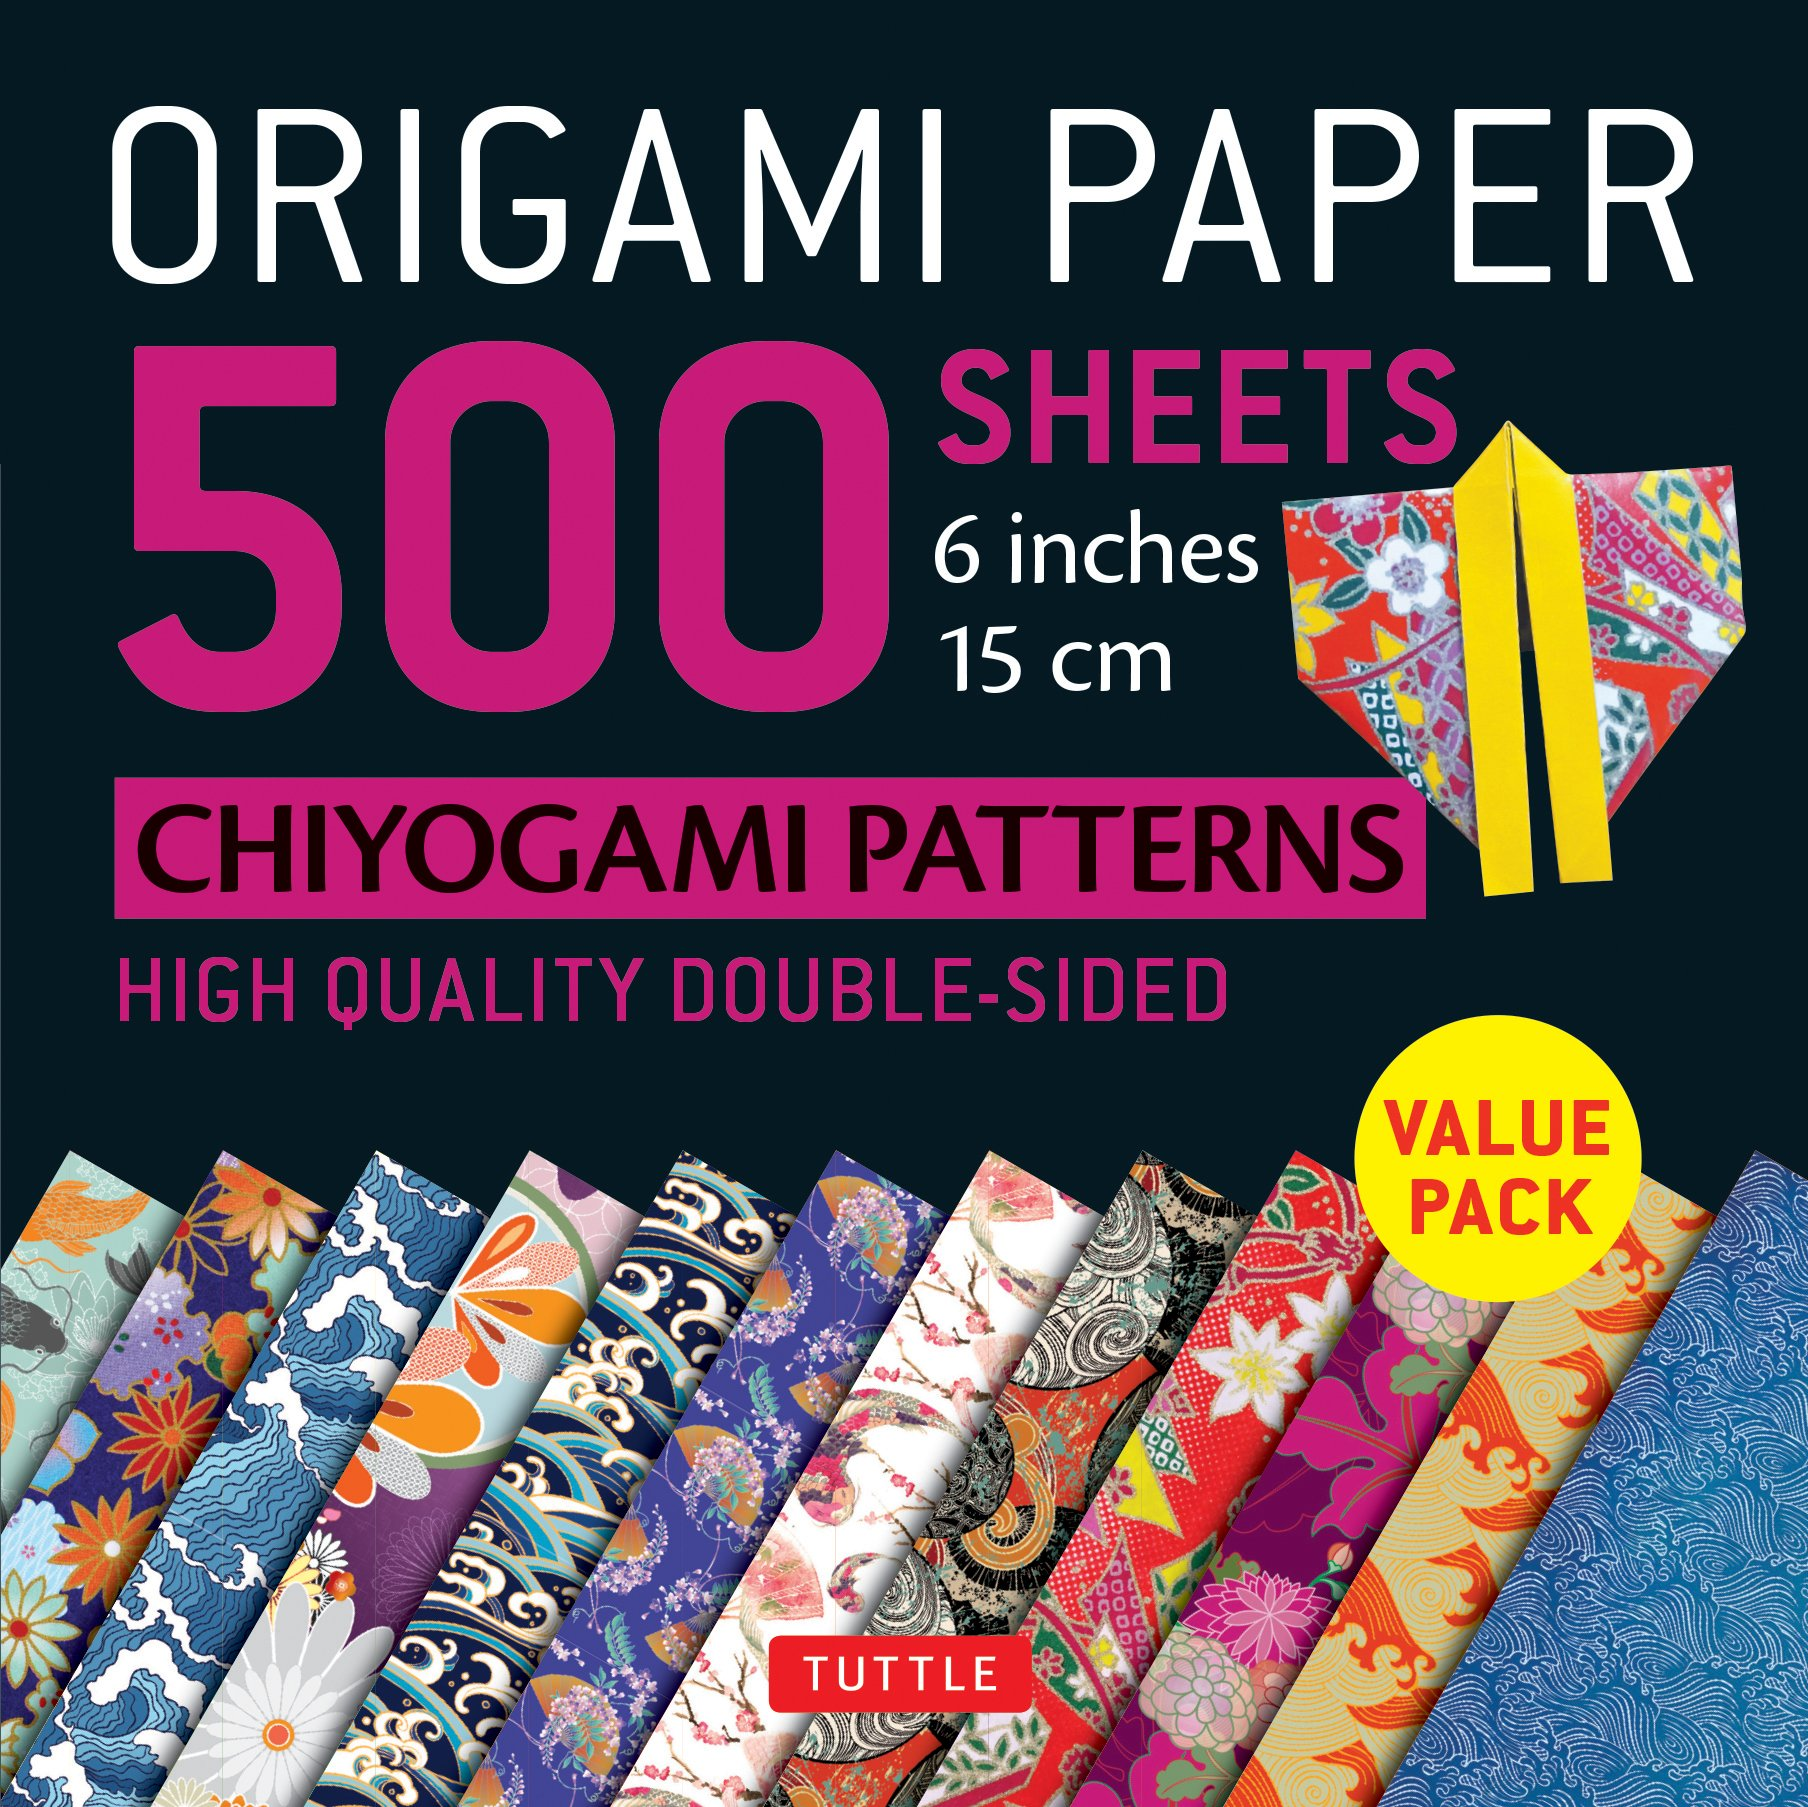 Origami Paper: The Best Material Choice For Easy Origami » Early ... | 1807x1808